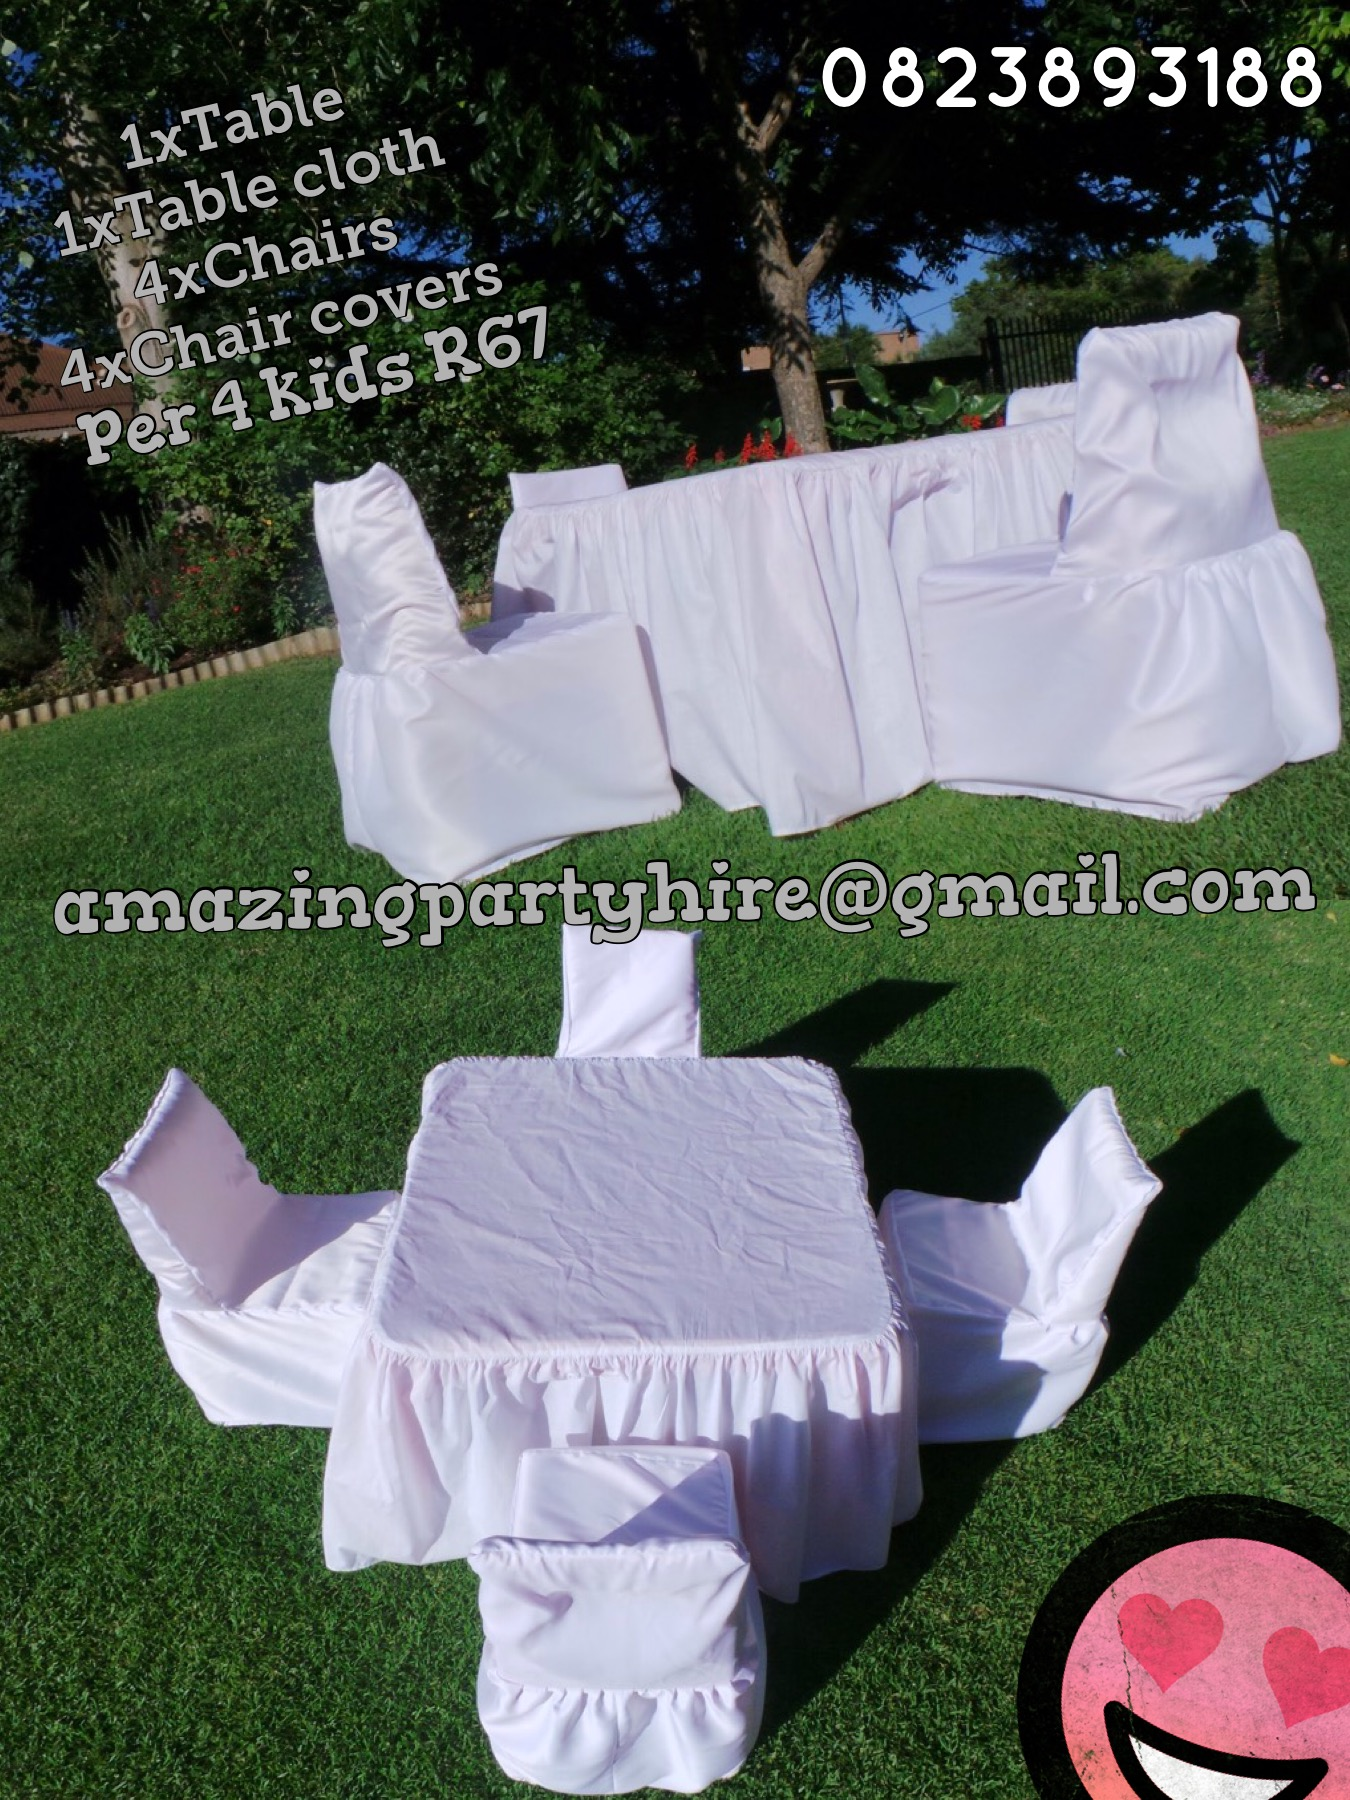 Table and Chairs with covers